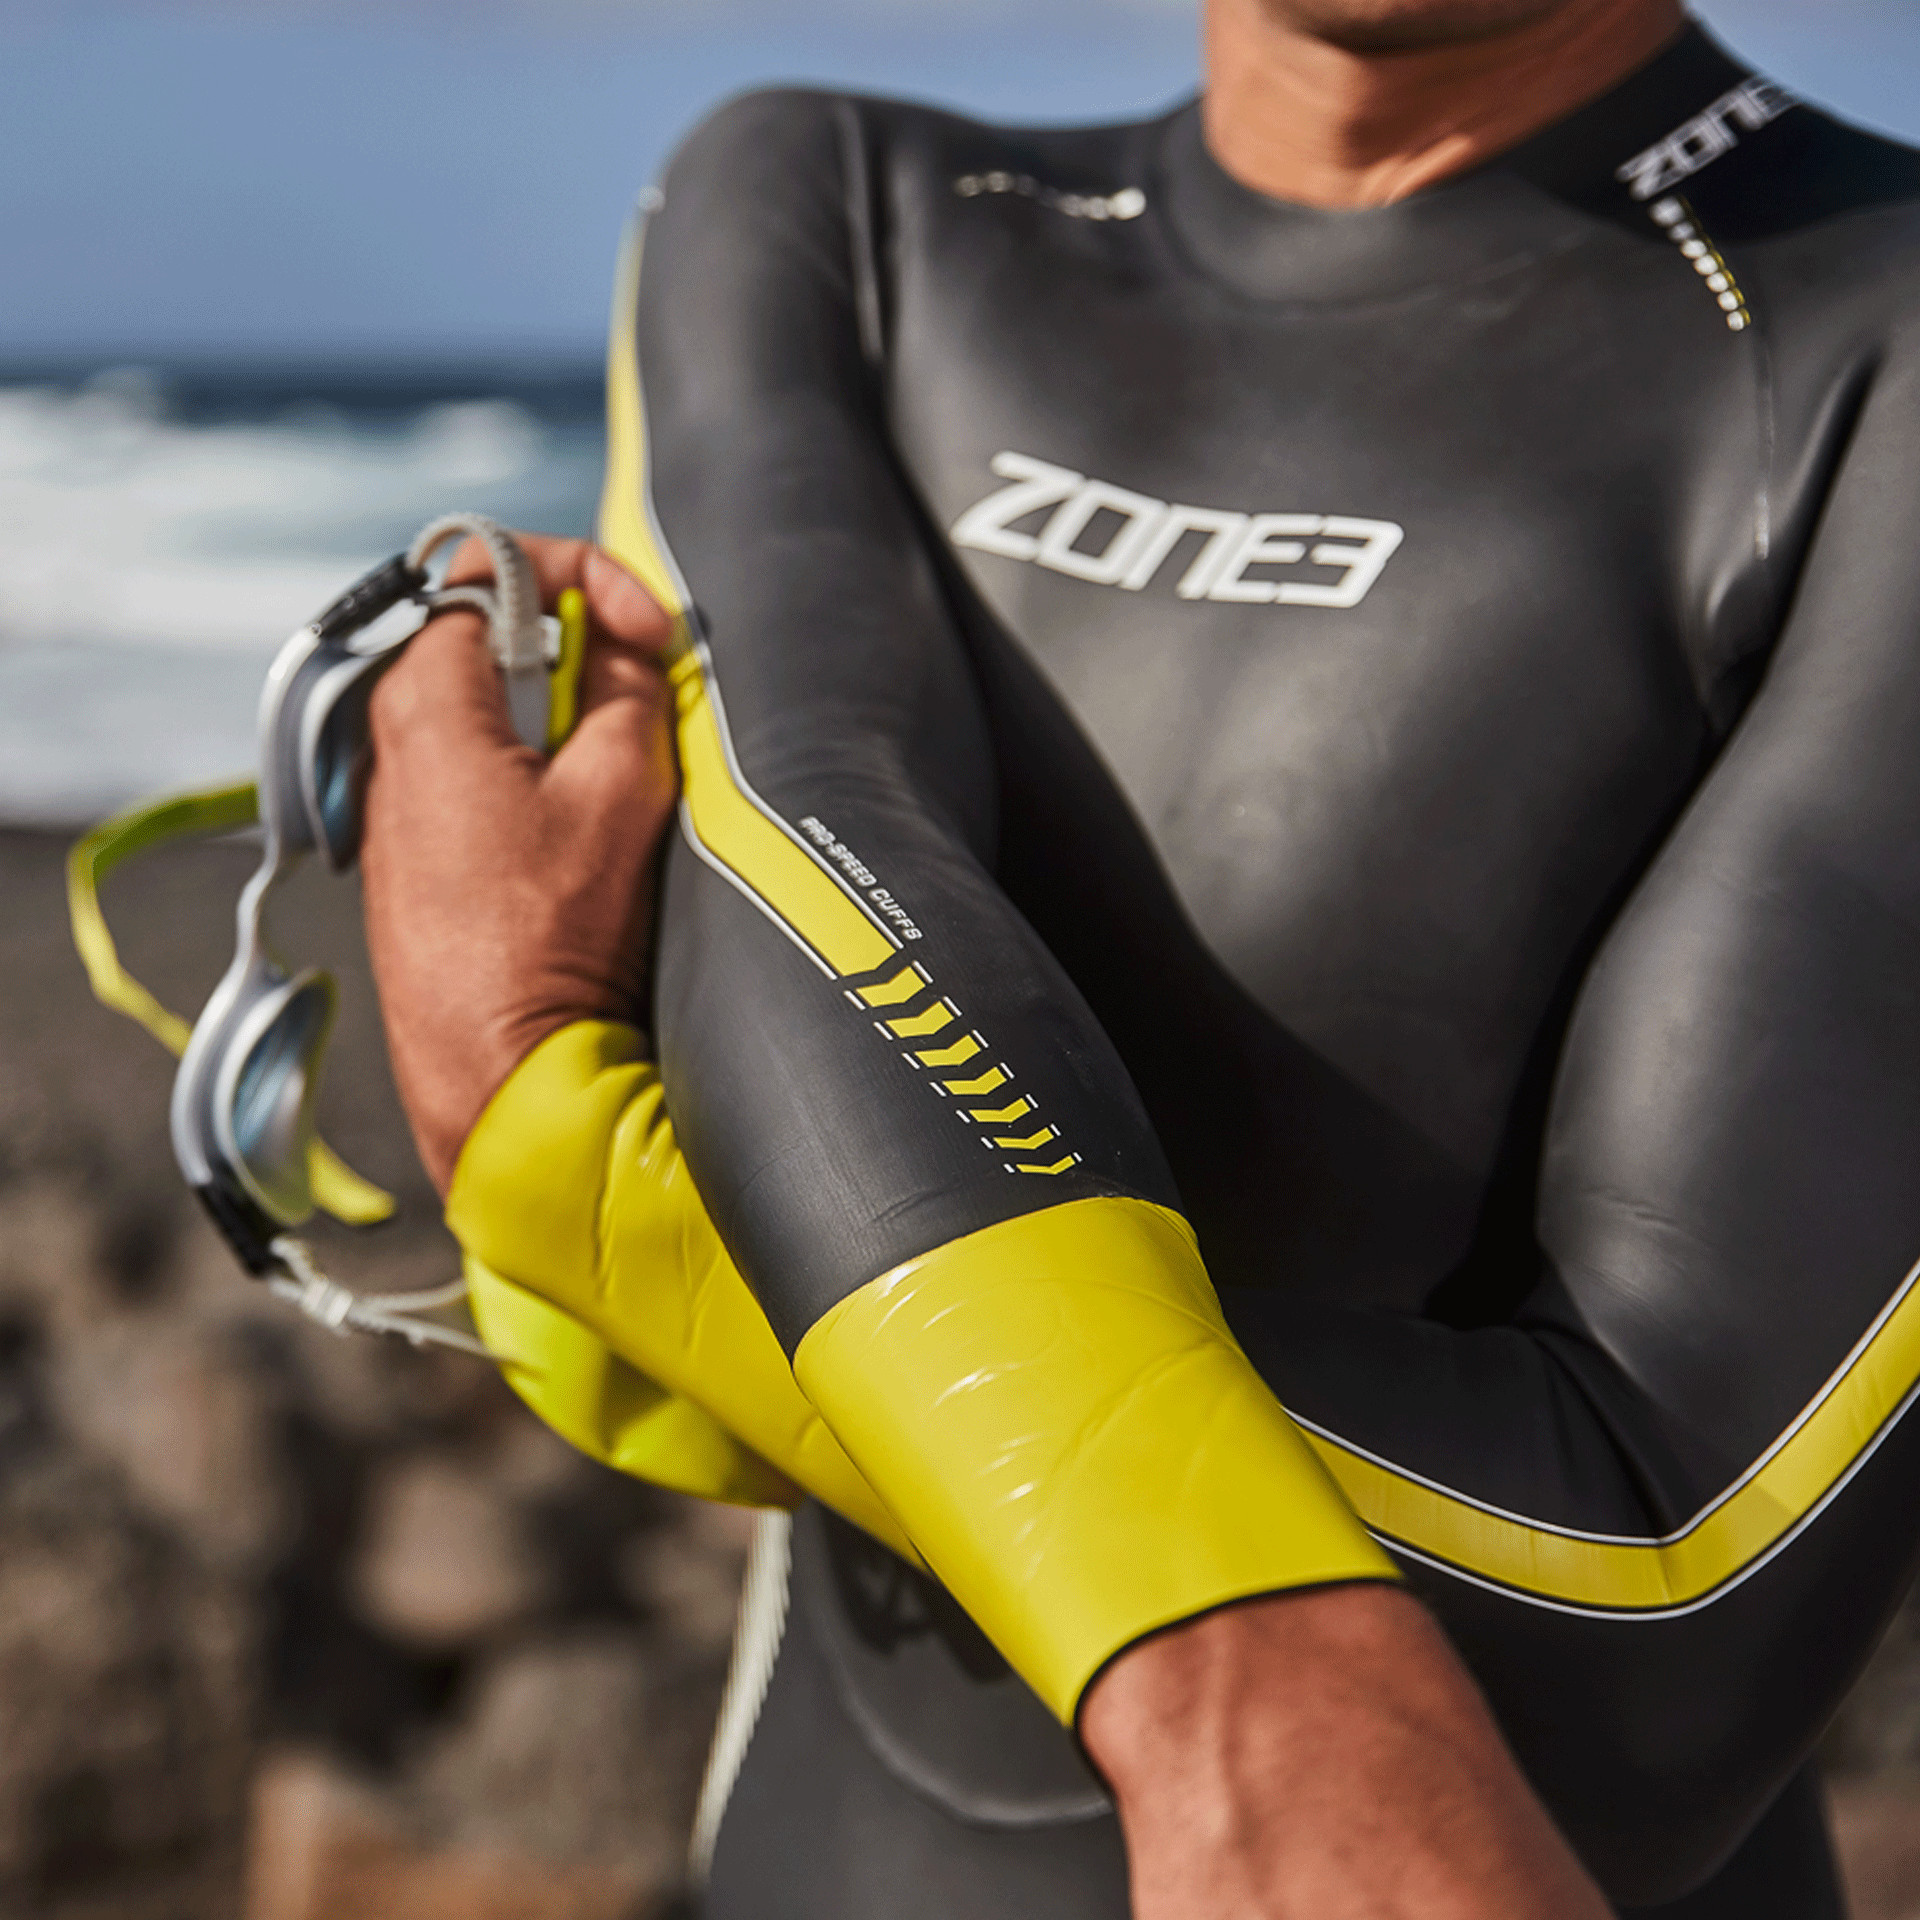 Zone 3 wetsuit fit